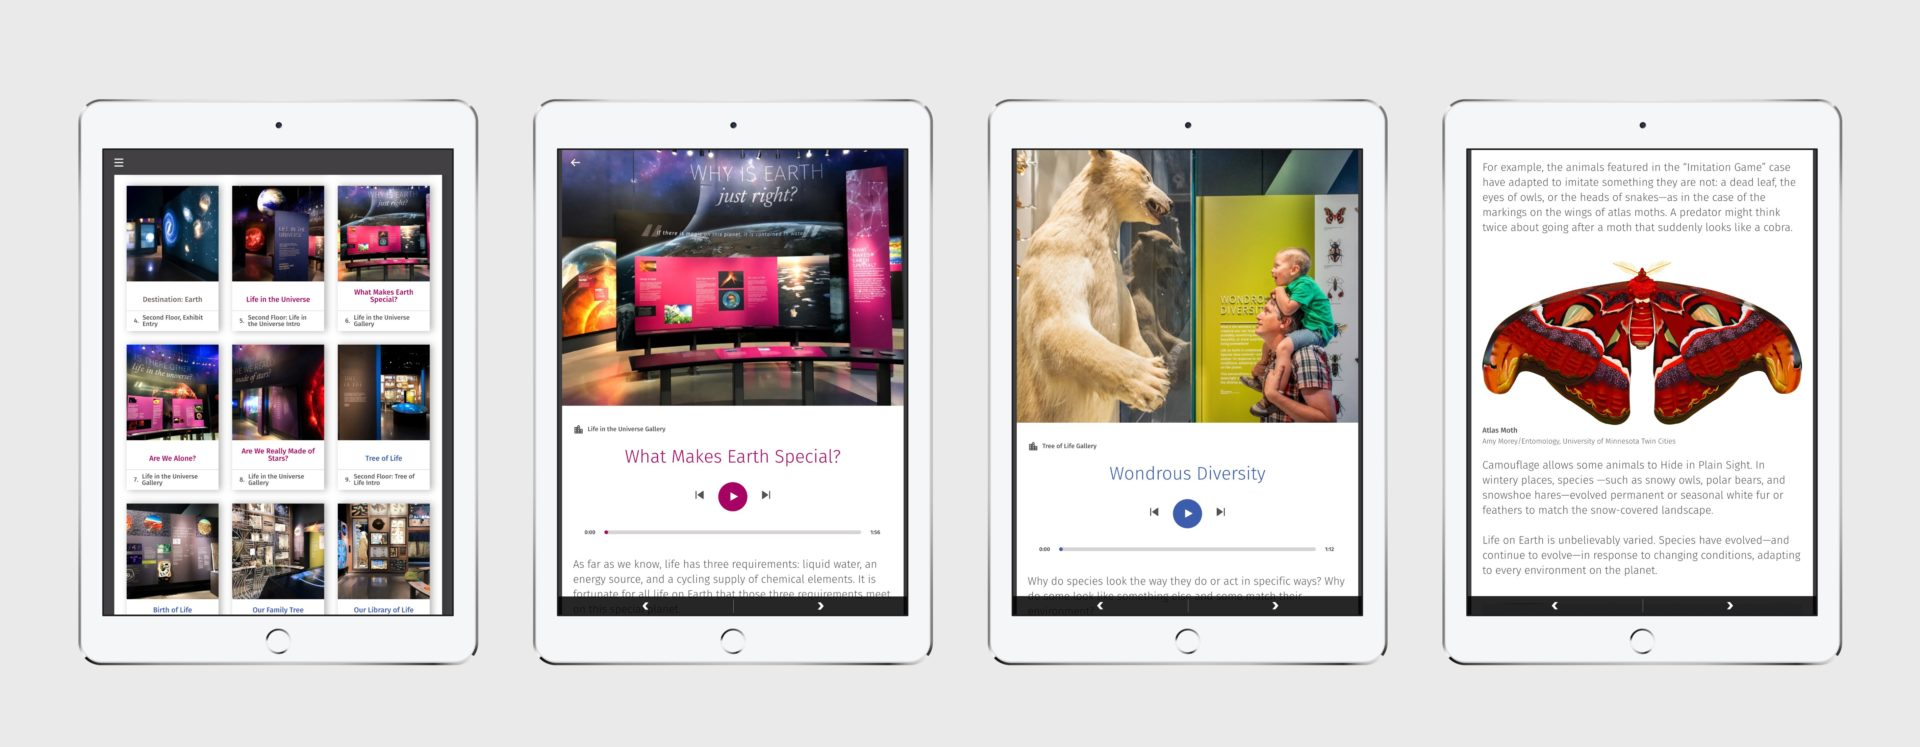 App preview on tablet with colorful photos